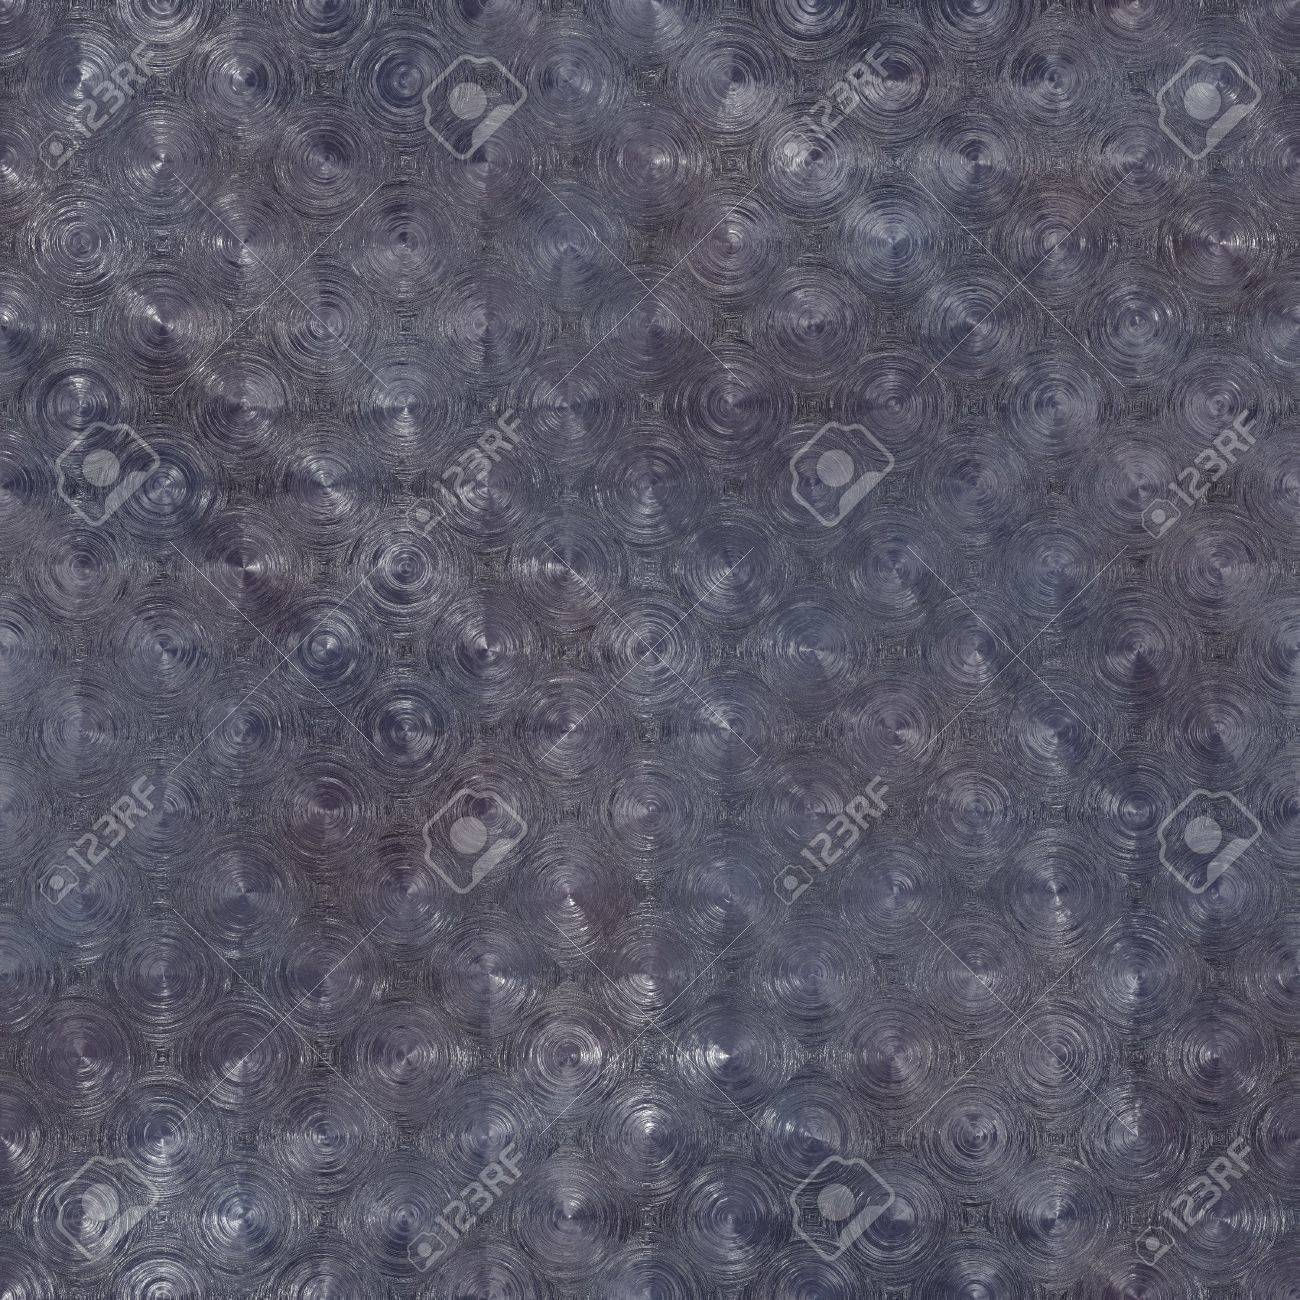 Seamless Pressed Metal Texture Background as Art Stock Photo - 6764707